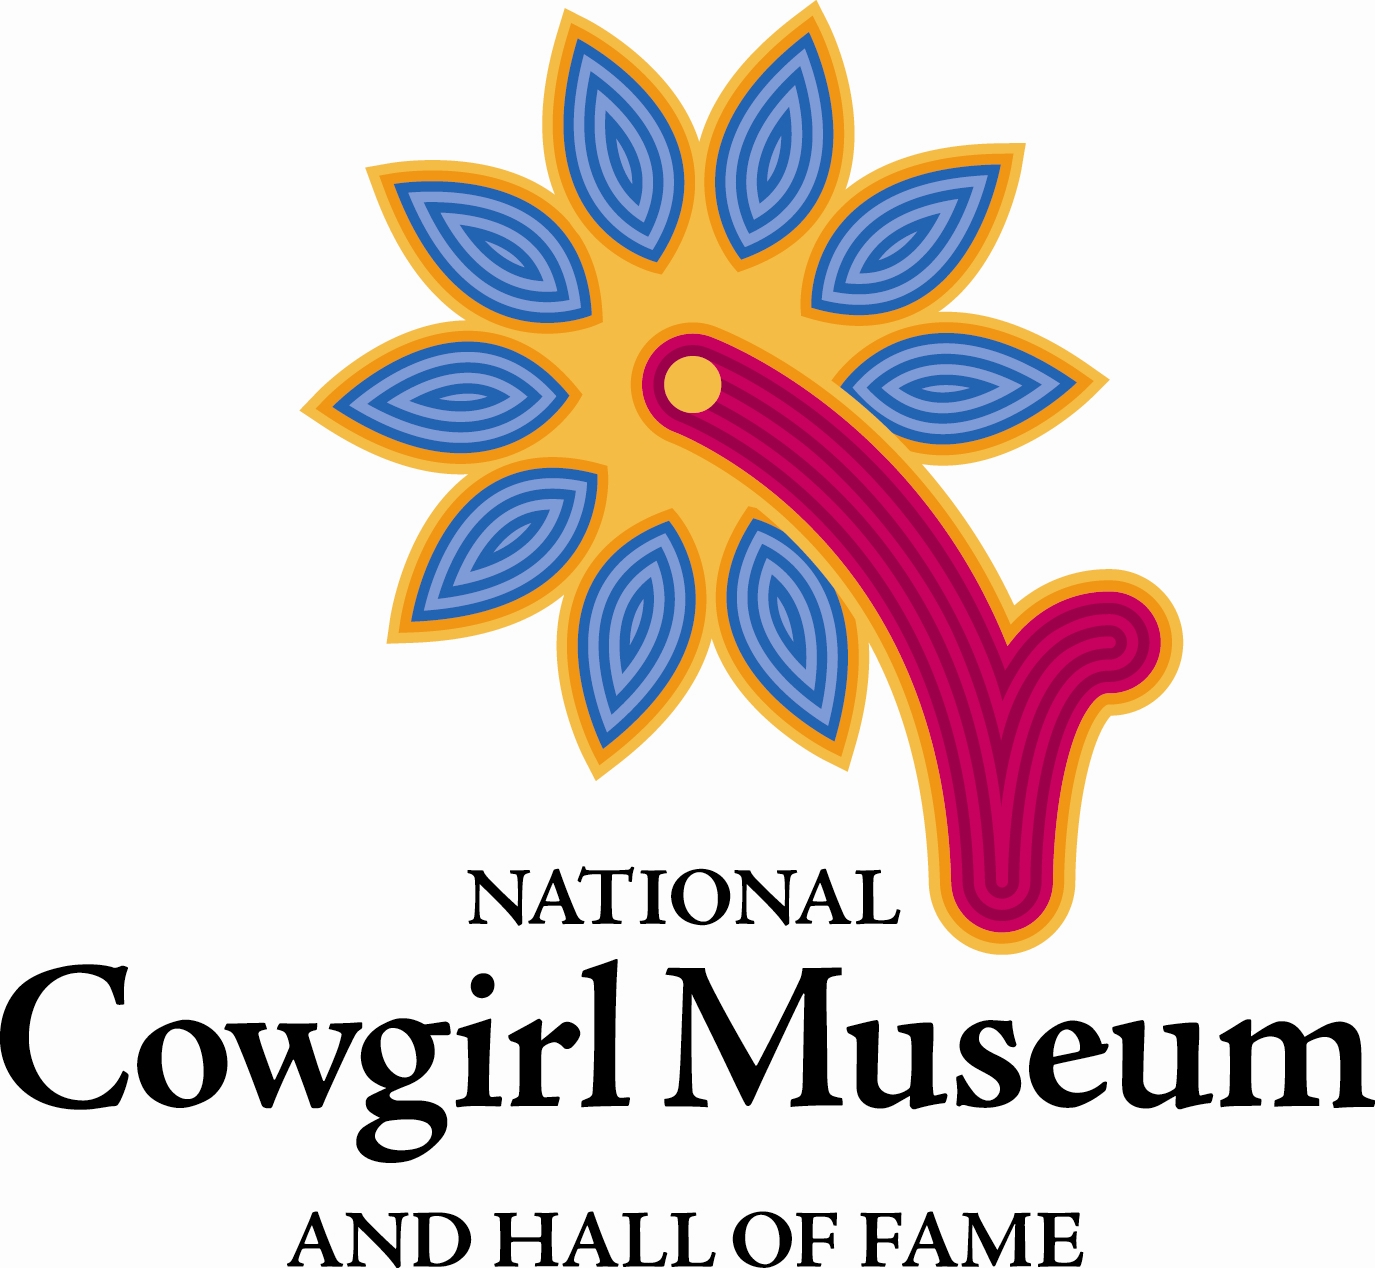 National Cowgirl Museum Logo